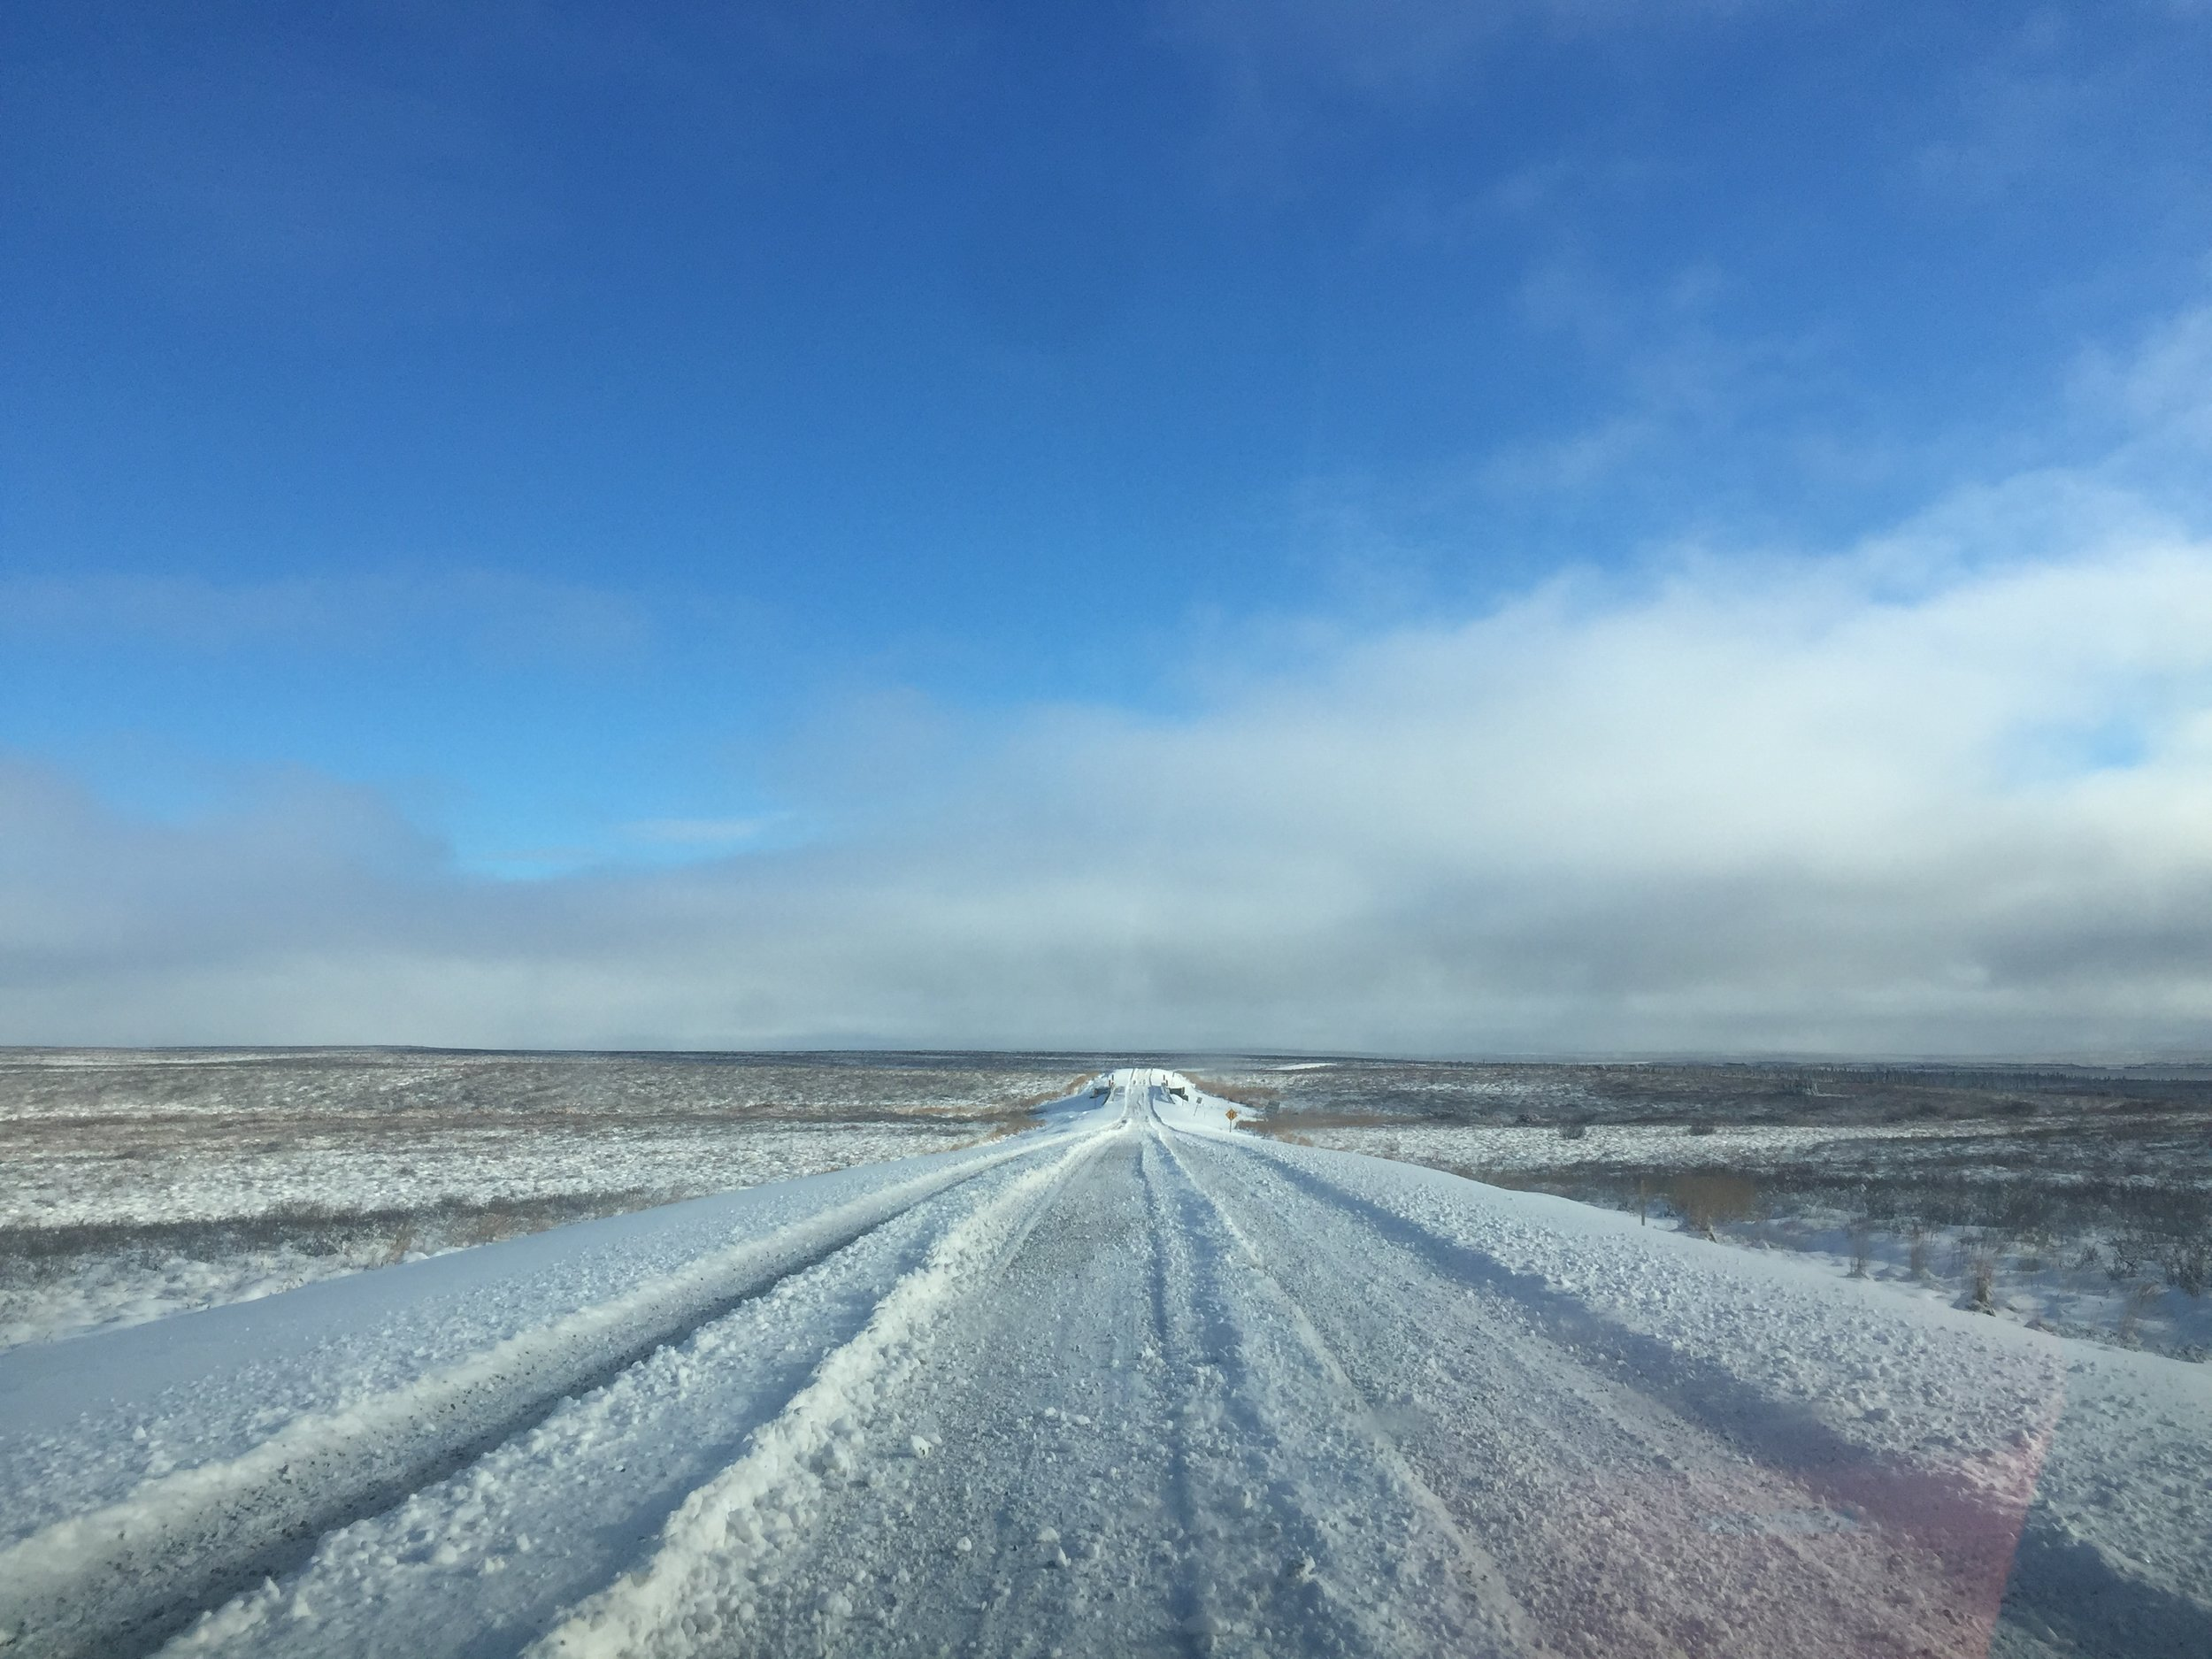 """Inuvik to Tuktoyaktuk road in late September. This highway cost over $300 million dollars for the Canadian tax payers. It connects Tuktuk to Inuvik with a four season """"highway"""". We will see how long the highway last. After all, it is built on permafrost."""